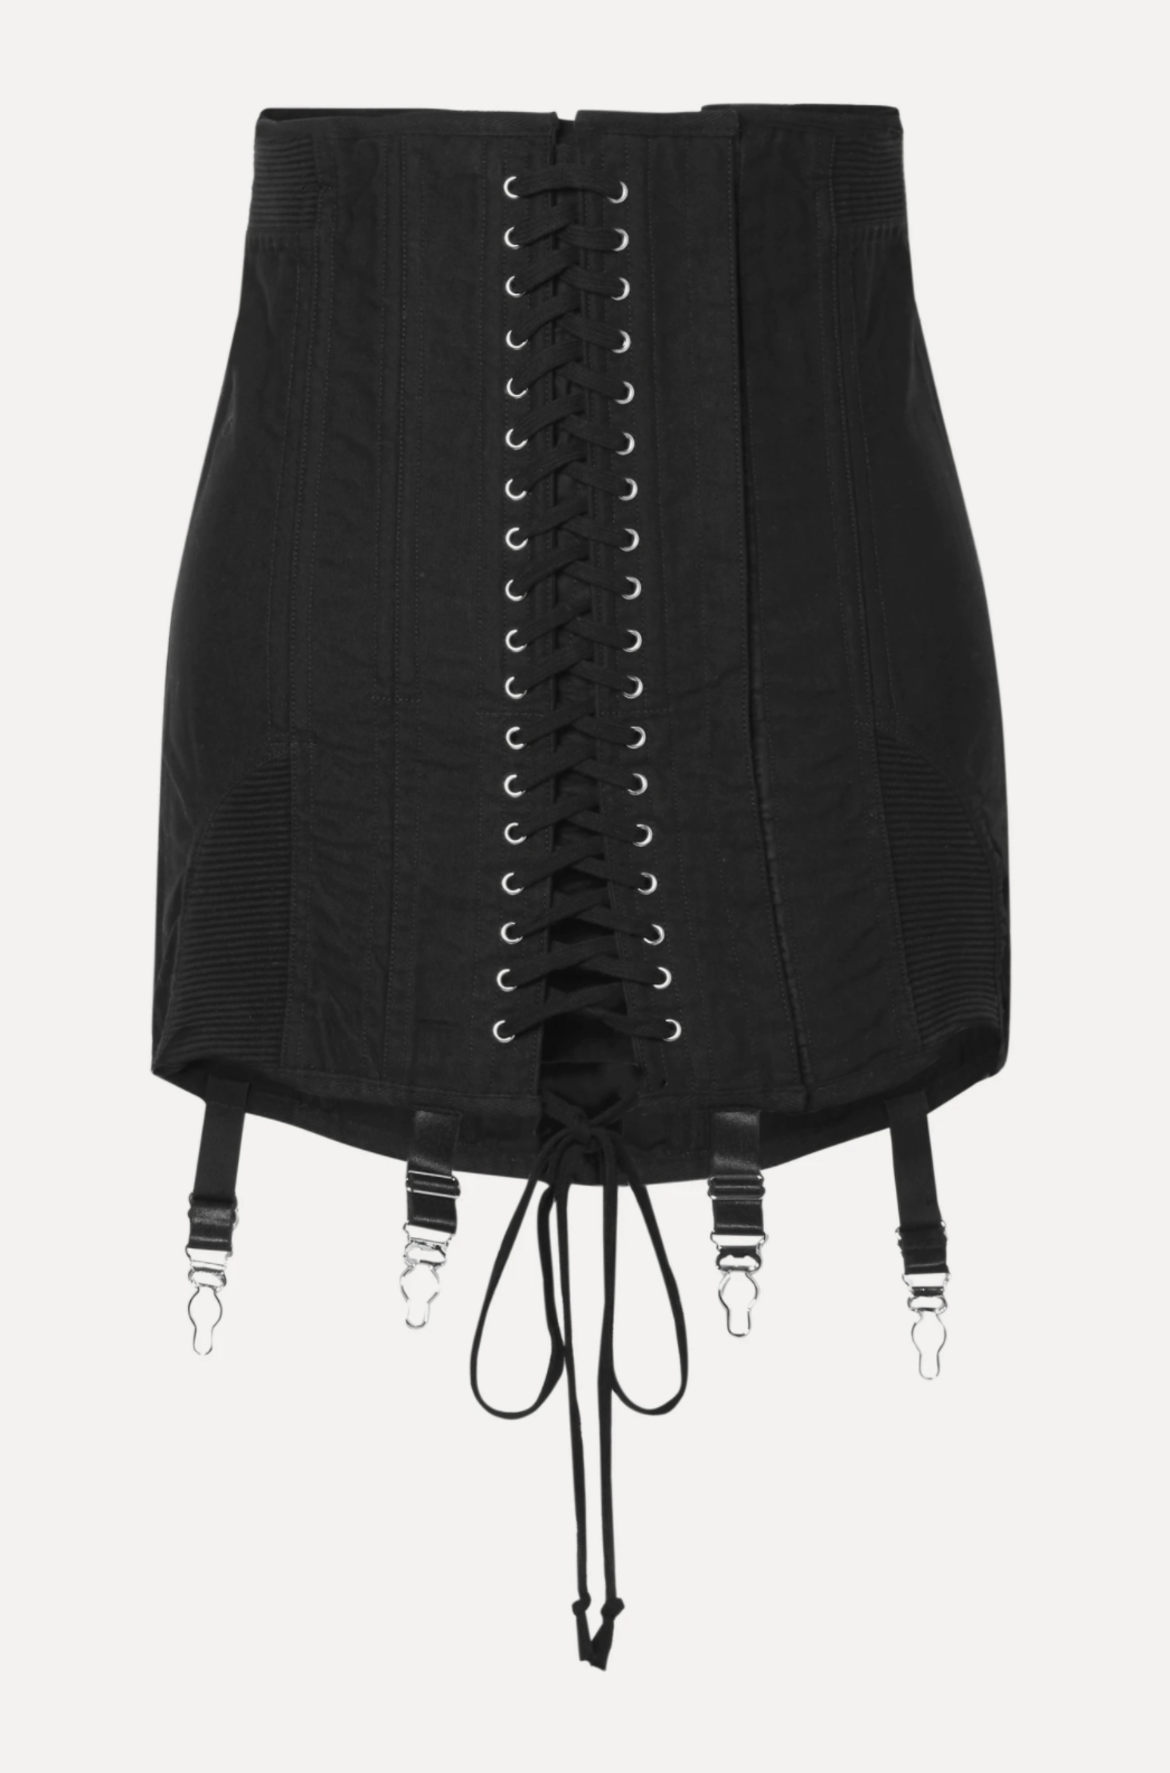 ORSEUND IRIS Gamine lace-up cotton-twill mini skirt HK$5,960 from net-a-porter